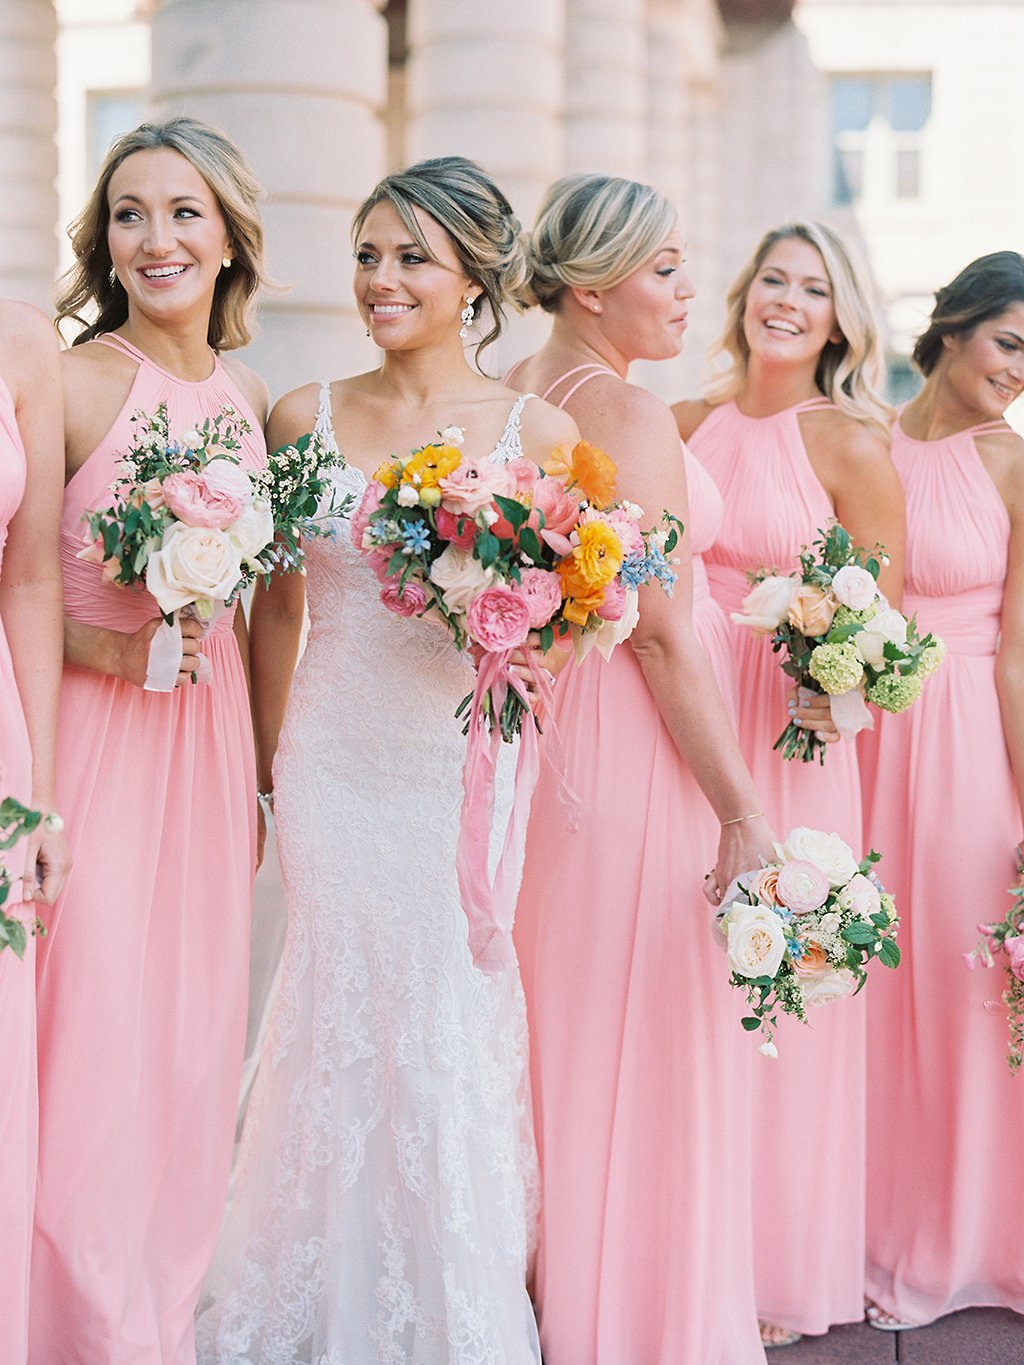 Bubblegum pink bridesmaids dresses added a burst of color to this bubblegum pink bridesmaids dresses wedding maryland maryland wedding annapolis wedding ball room wedding ombrellifo Image collections